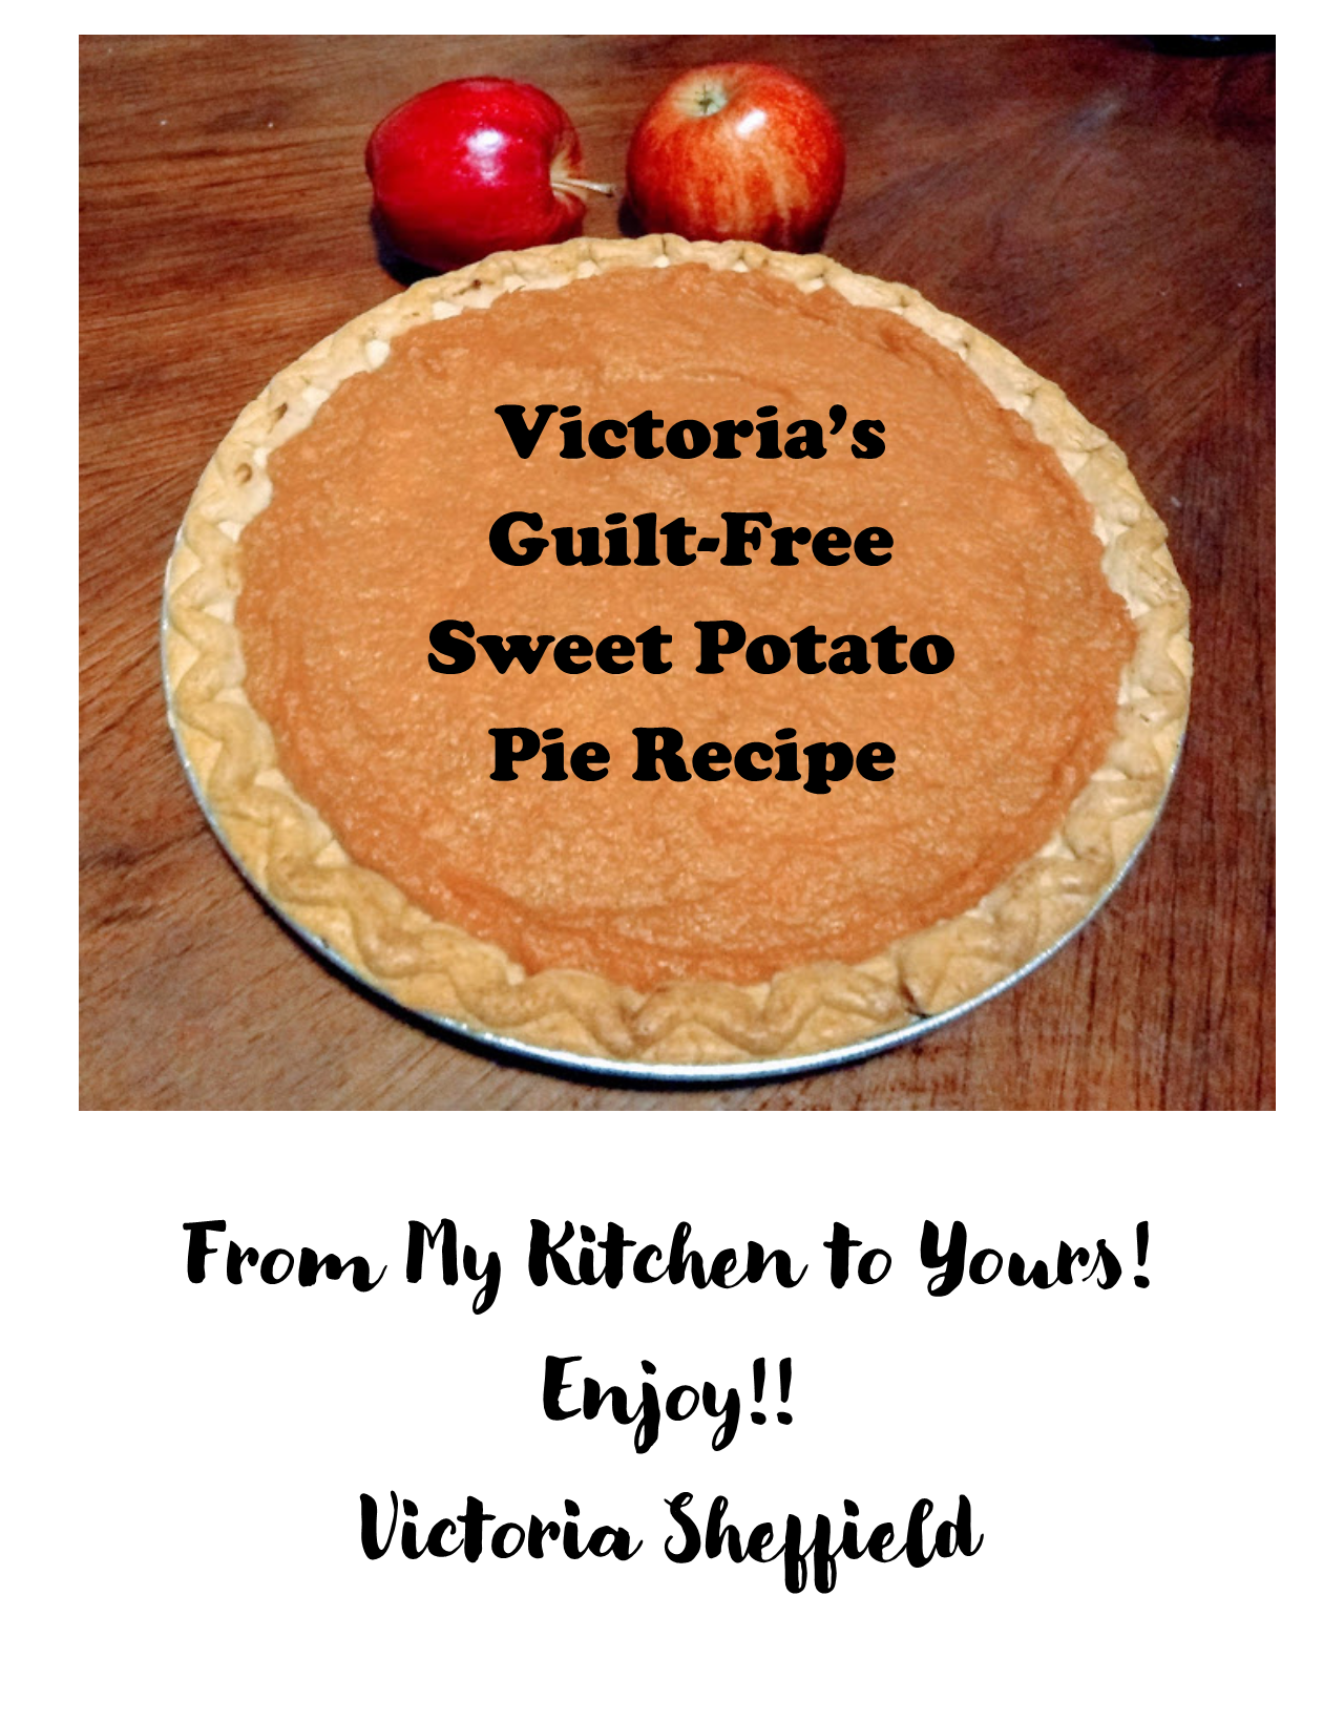 Victoria's Guilt-Free Sweet Potato Recipe